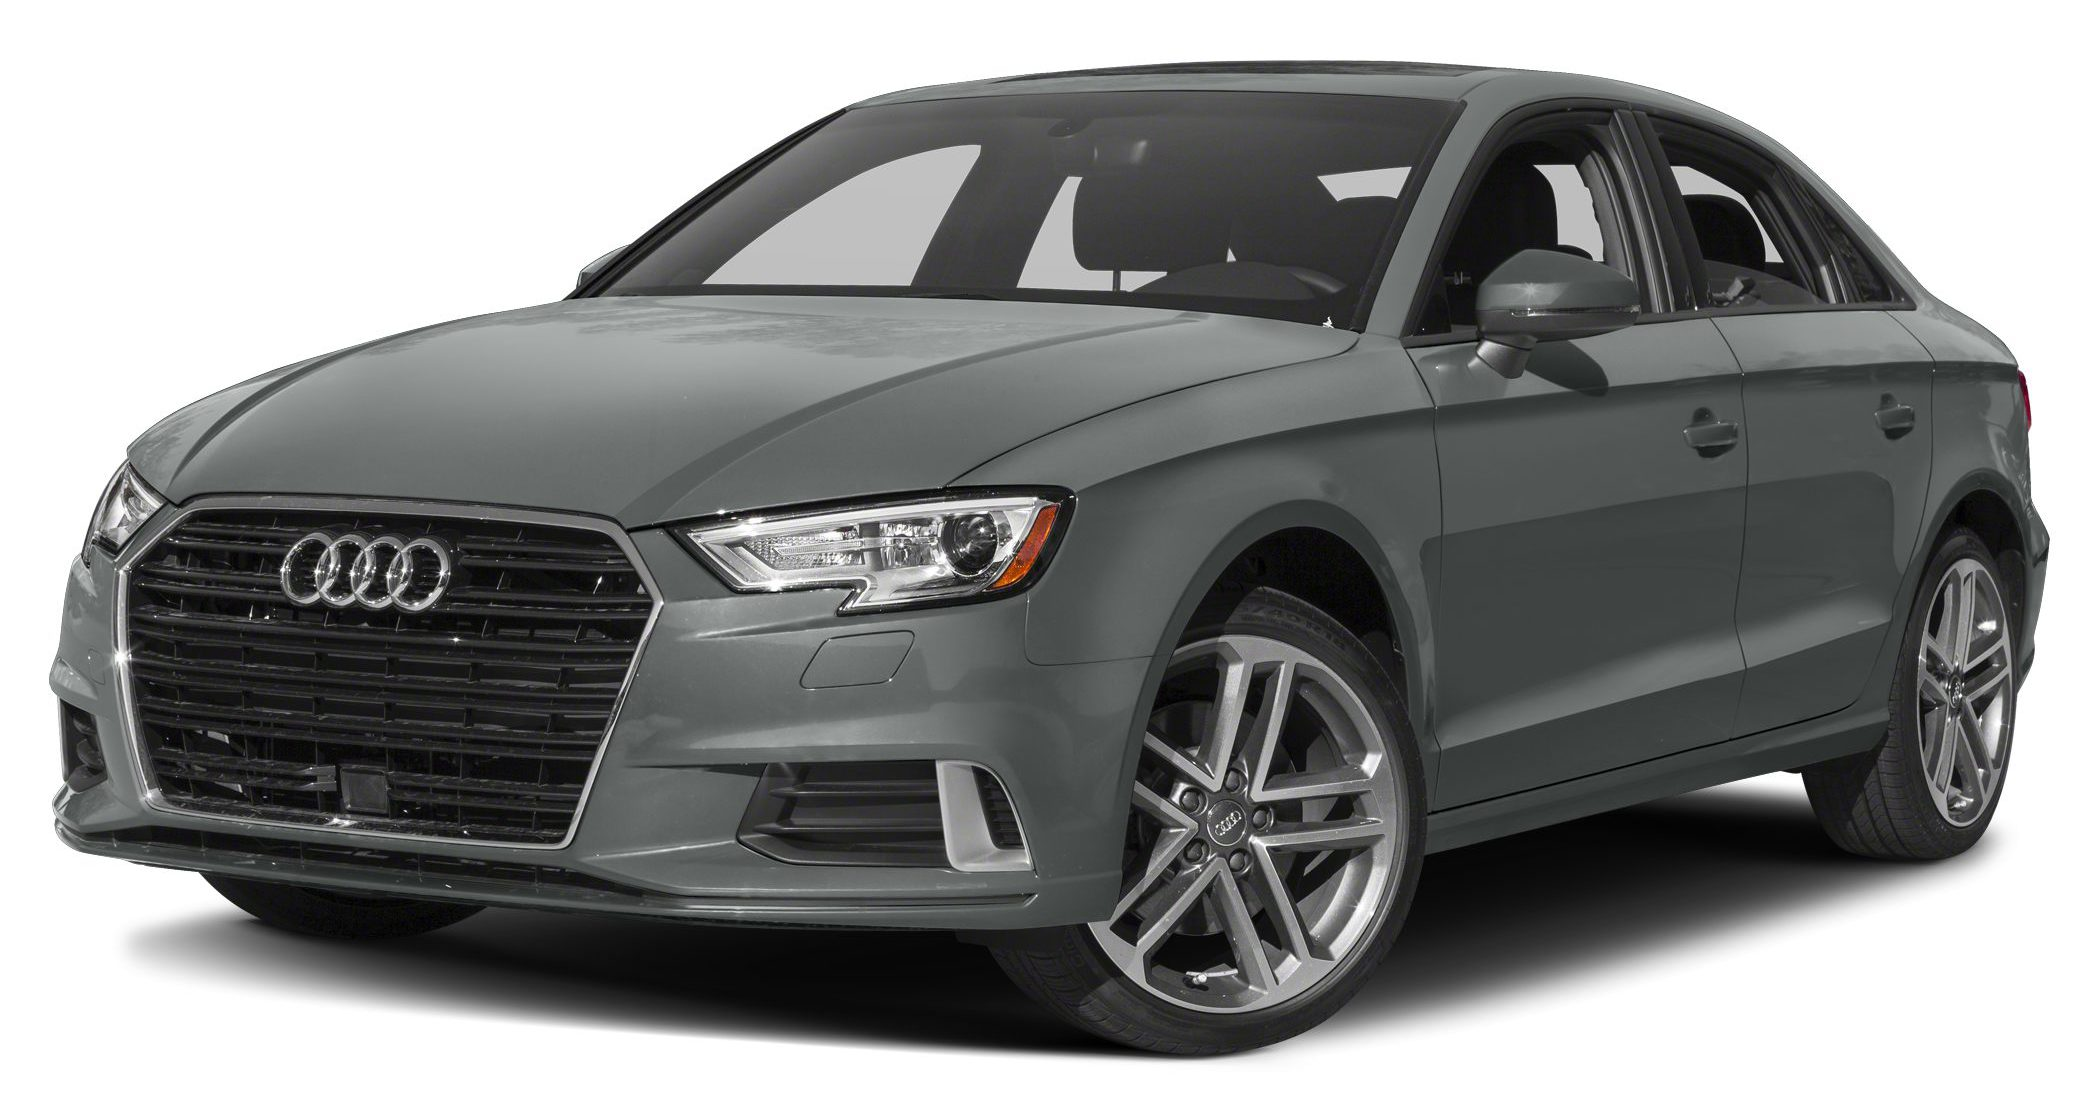 cars story advanced is innovative audi money sedan